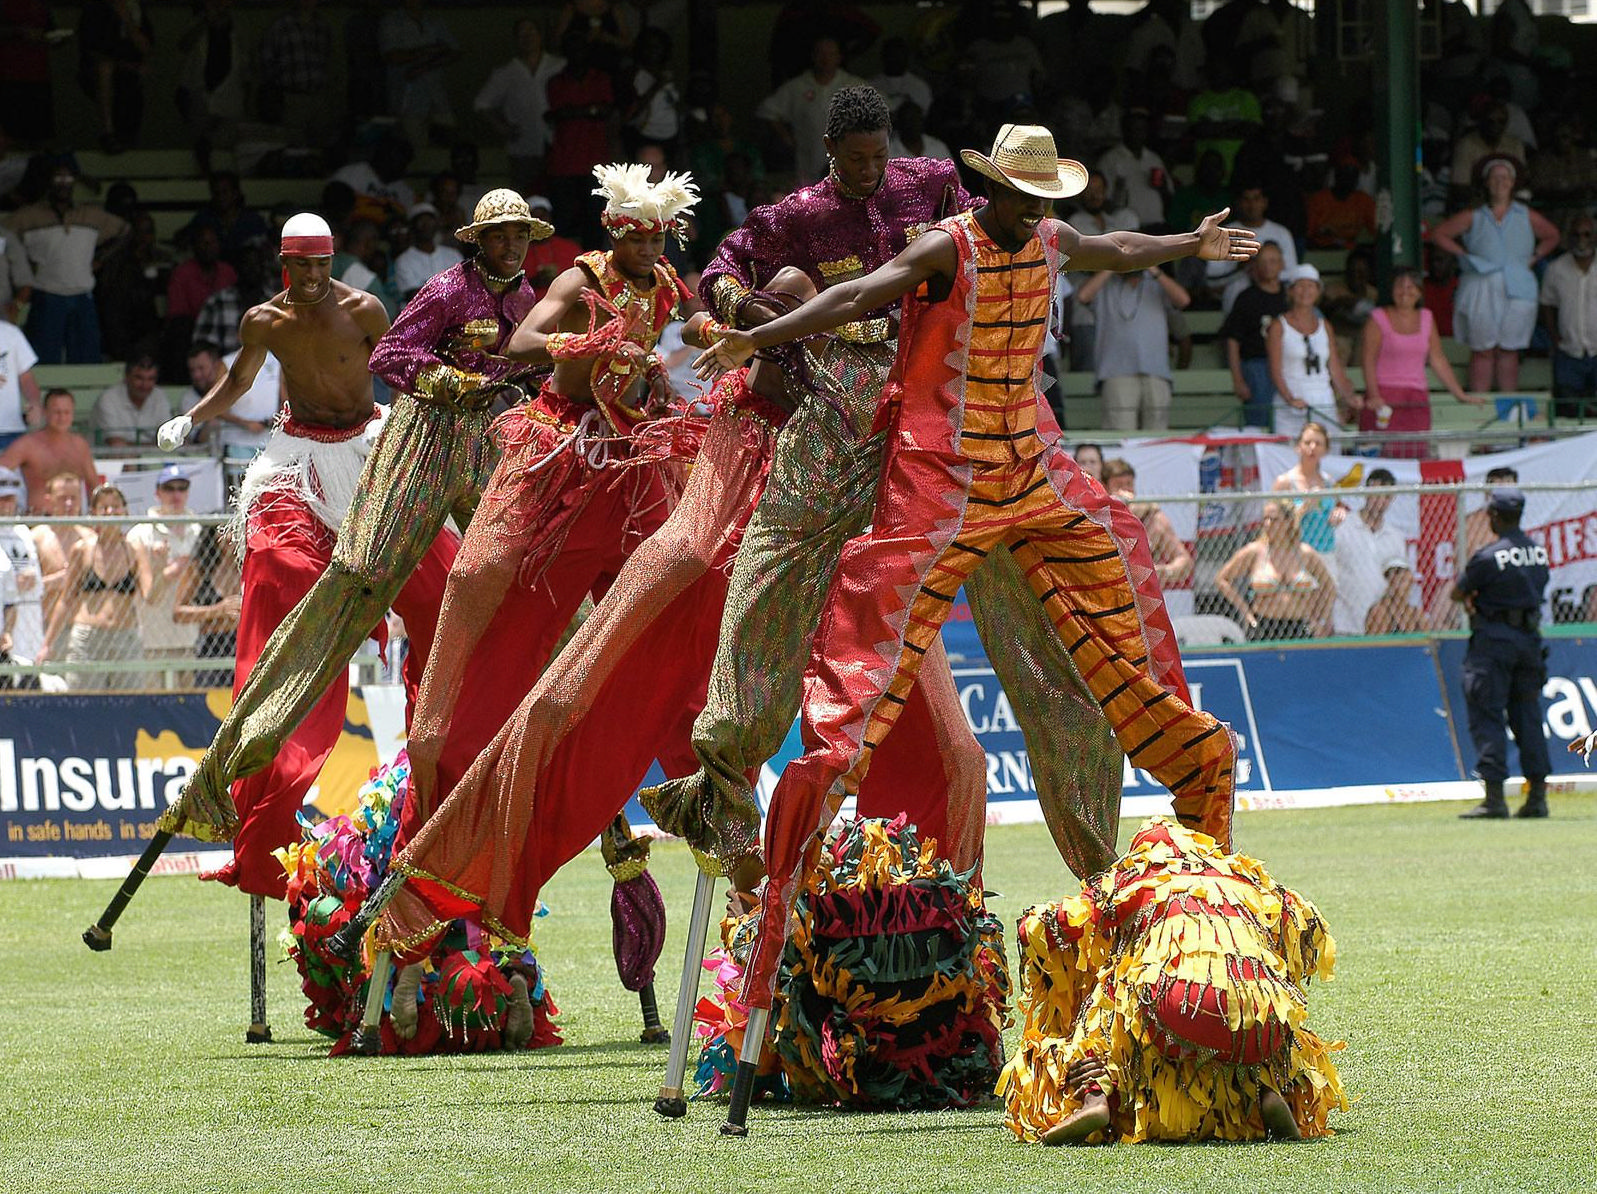 CULTURAL EVENTS And PUBLIC HOLIDAYS IN THE CARIBBEAN